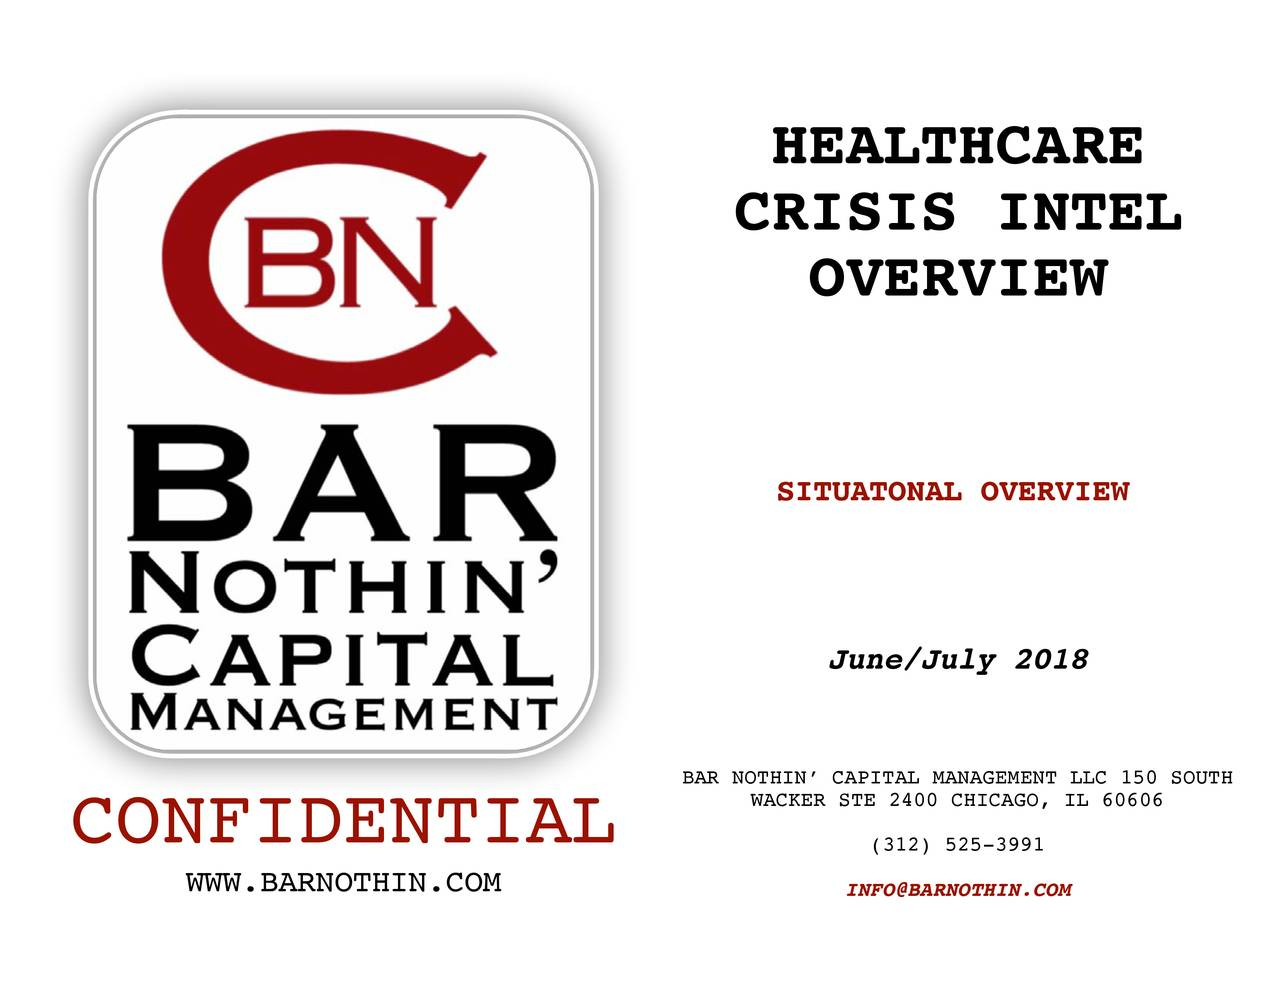 CRISIS INTEL OVERVIEW SITUATONAL OVERVIEW June/July 2018 BAR NOTHIN' CAPITAL MANAGEMENT LLC 150 SOUTH CONFIDENTIAL WACKER STE 2400 CHICAGO, IL 60606 (312) 525-3991 WWW.BARNOTHIN.COM INFO@BARNOTHIN.COM